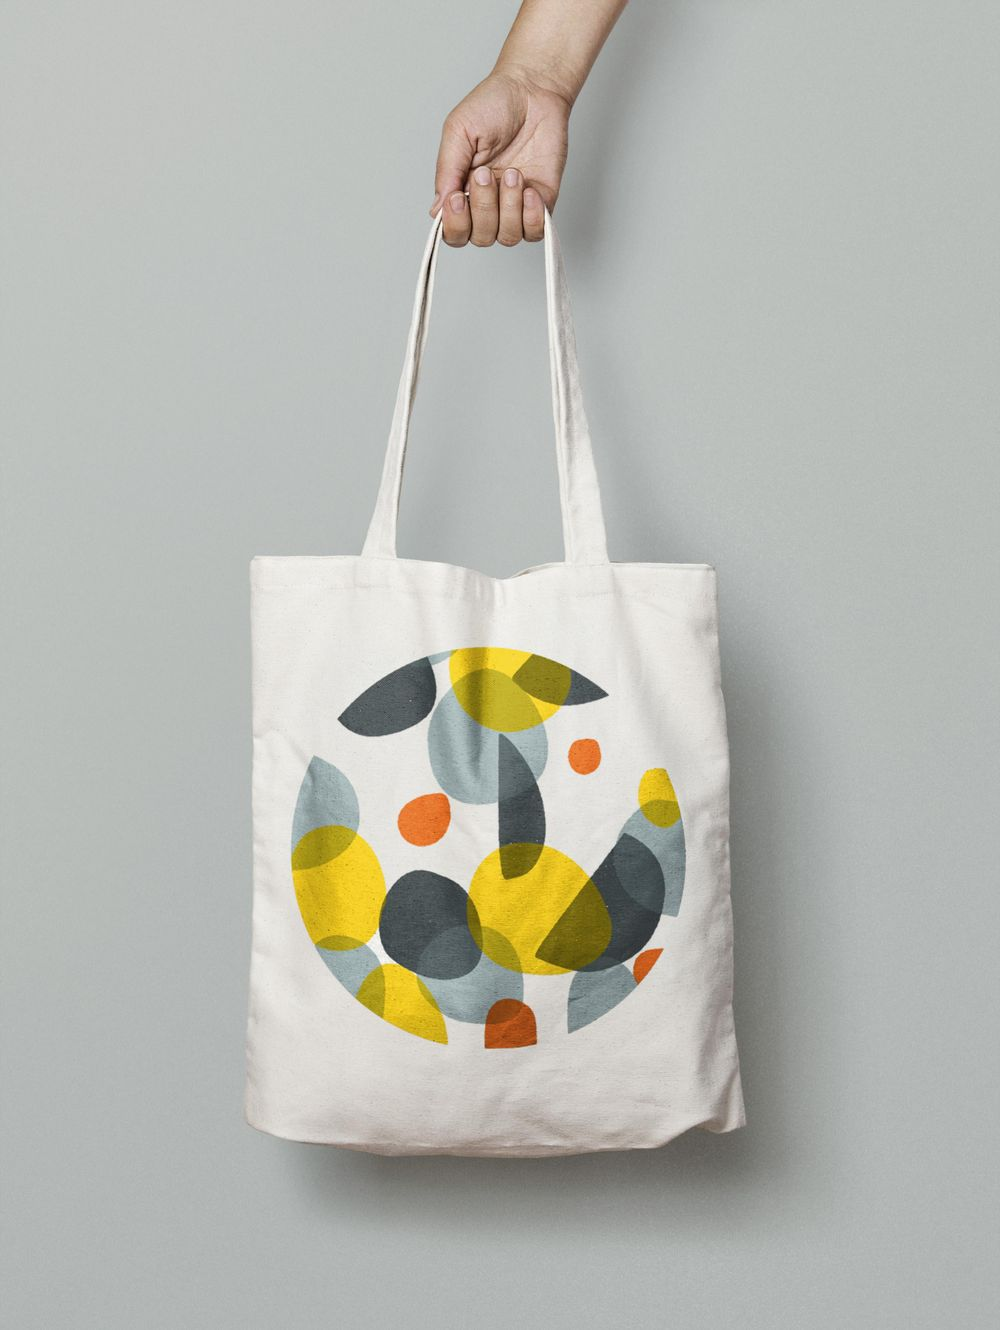 Colourful circles and abstract shapes - image 16 - student project